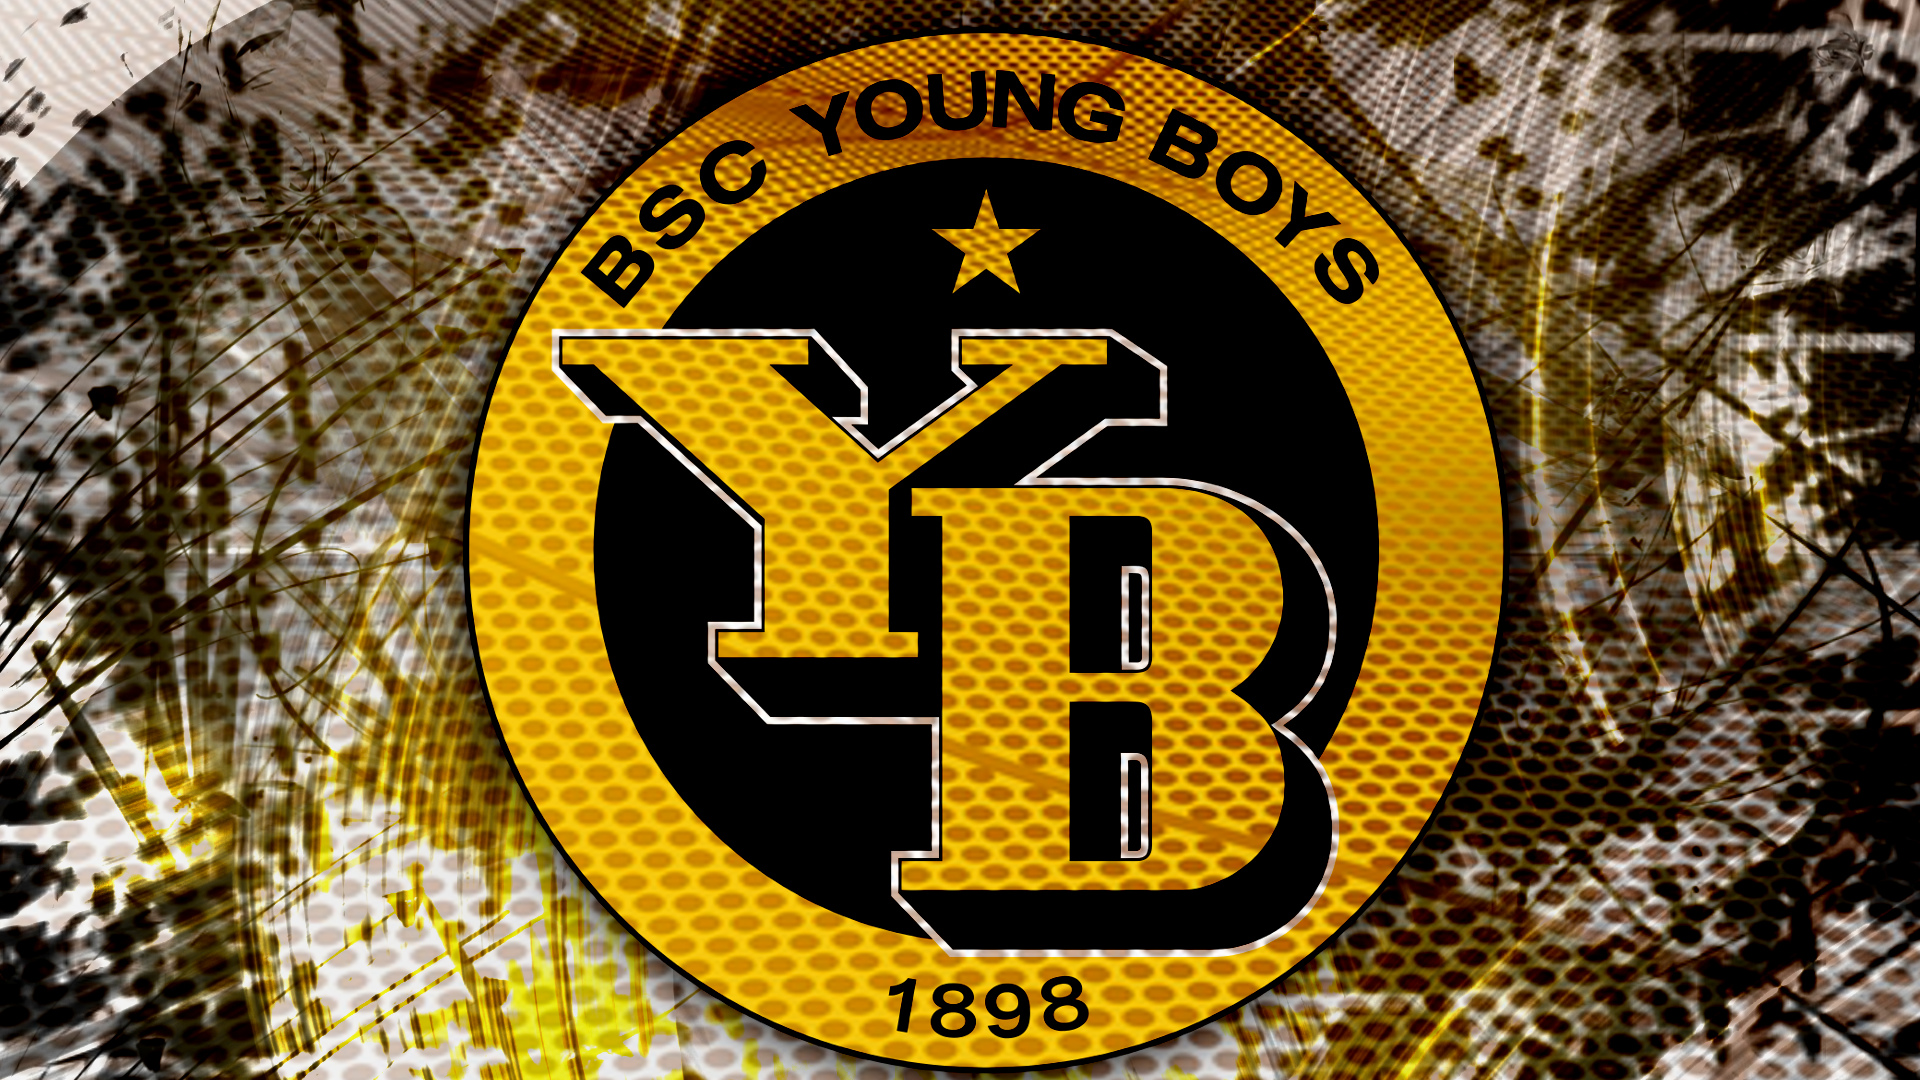 1920x1080 - BSC Young Boys Wallpapers 3